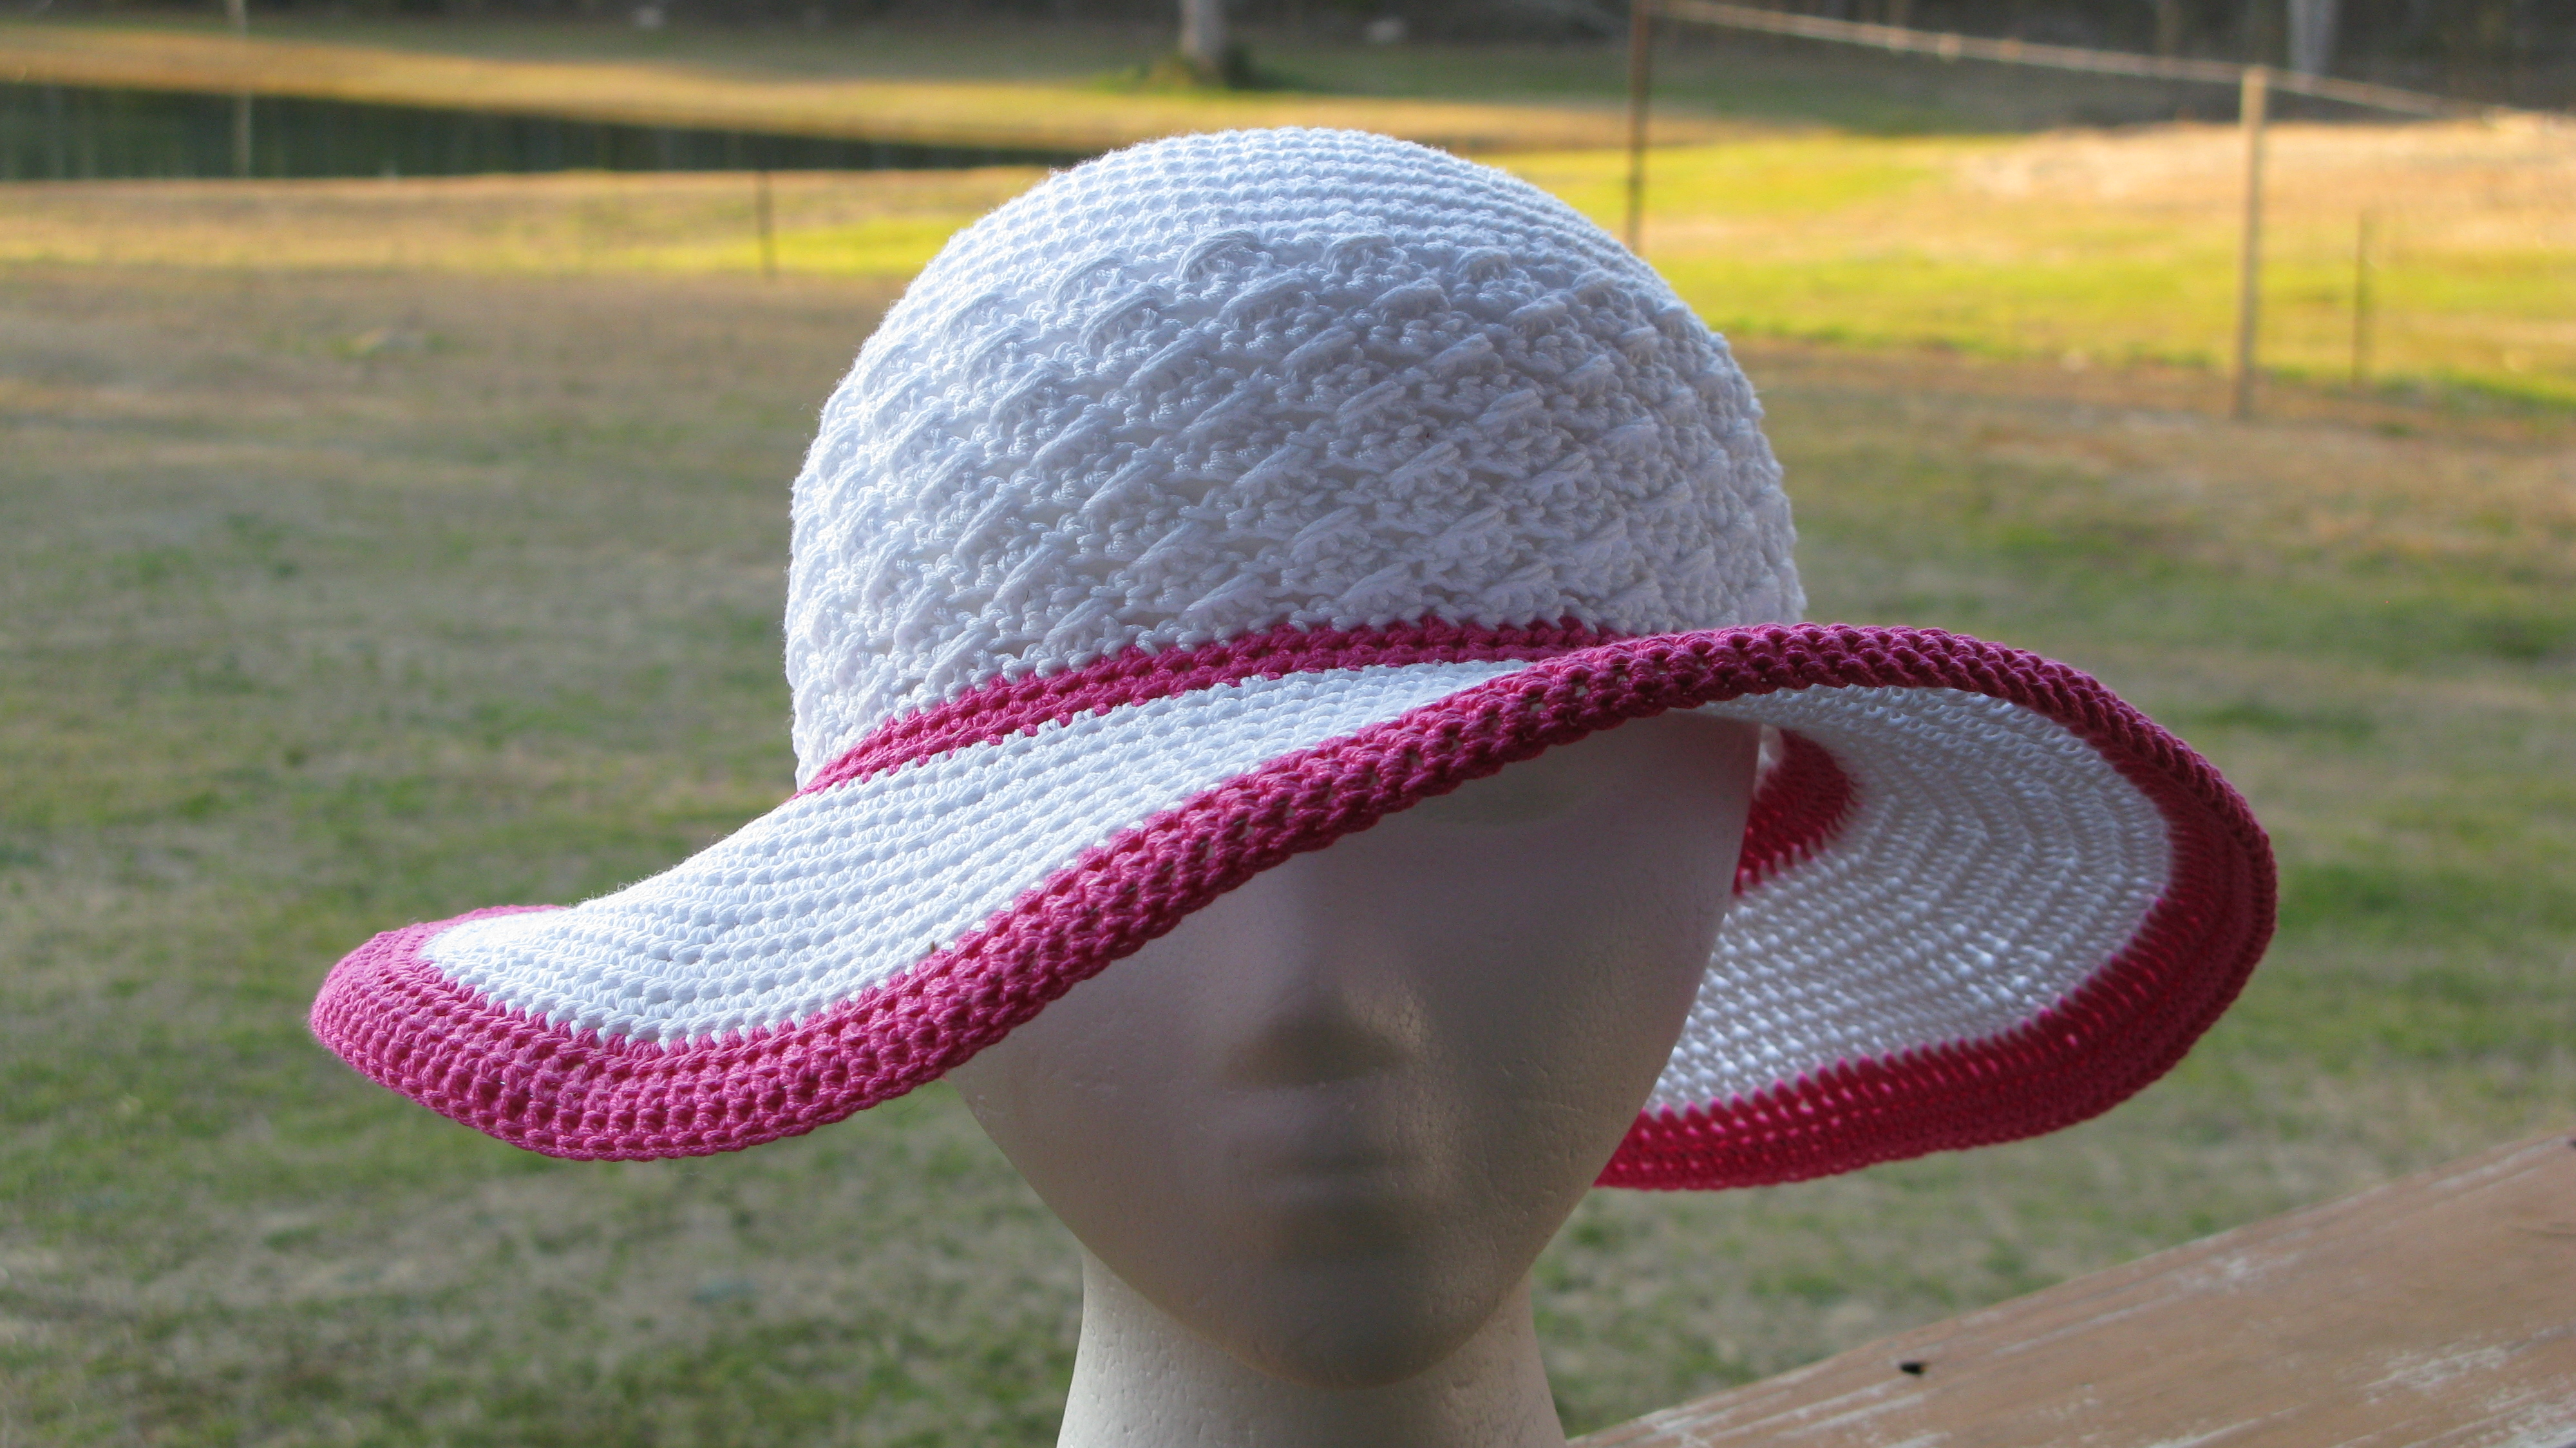 My Summer Beach Hat is in a Contest! - ELK Studio - Handcrafted ...